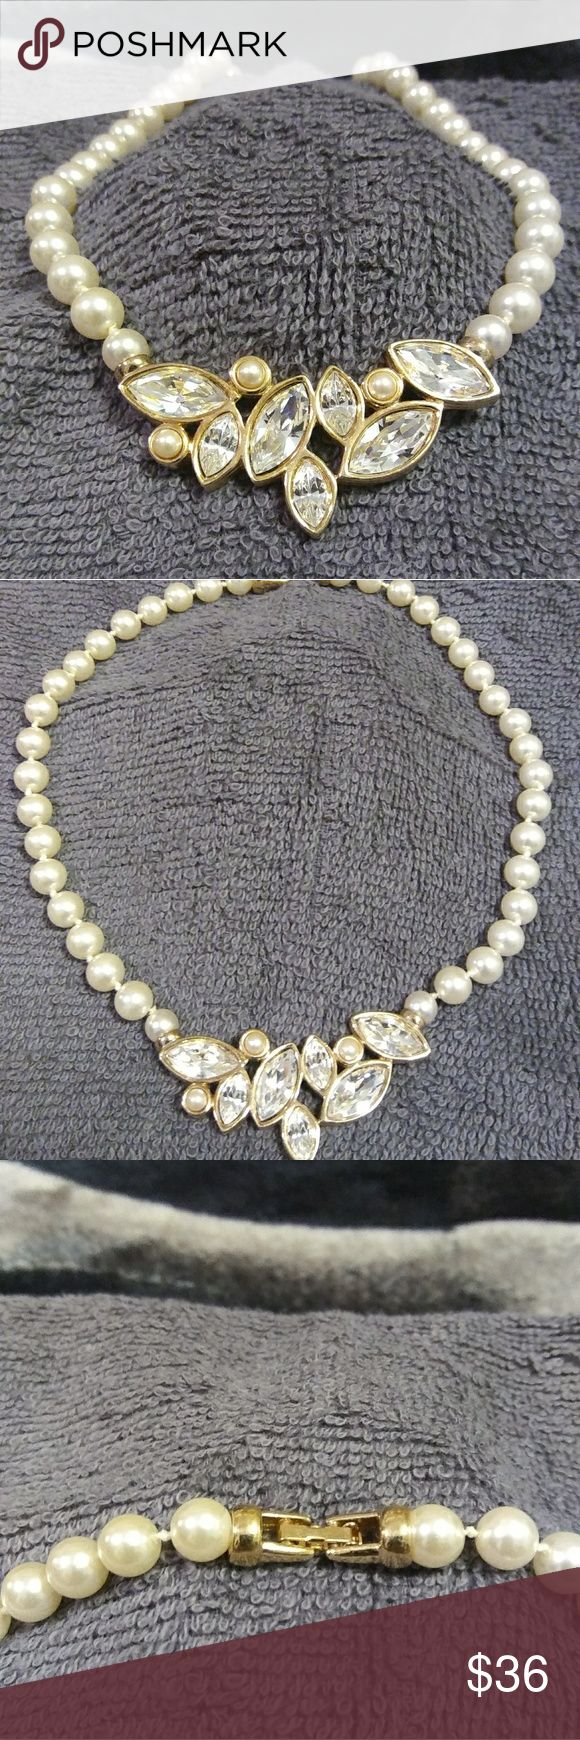 Vintage S.A.L Signed Necklace Swarovski America, Ltd., S.A.L. was the first name under which the famed Austrian crystal company began manufacturing their own jewelry. Swarovski crystals and faux pearl very beautiful vintage condition. Swarovski Jewelry Necklaces